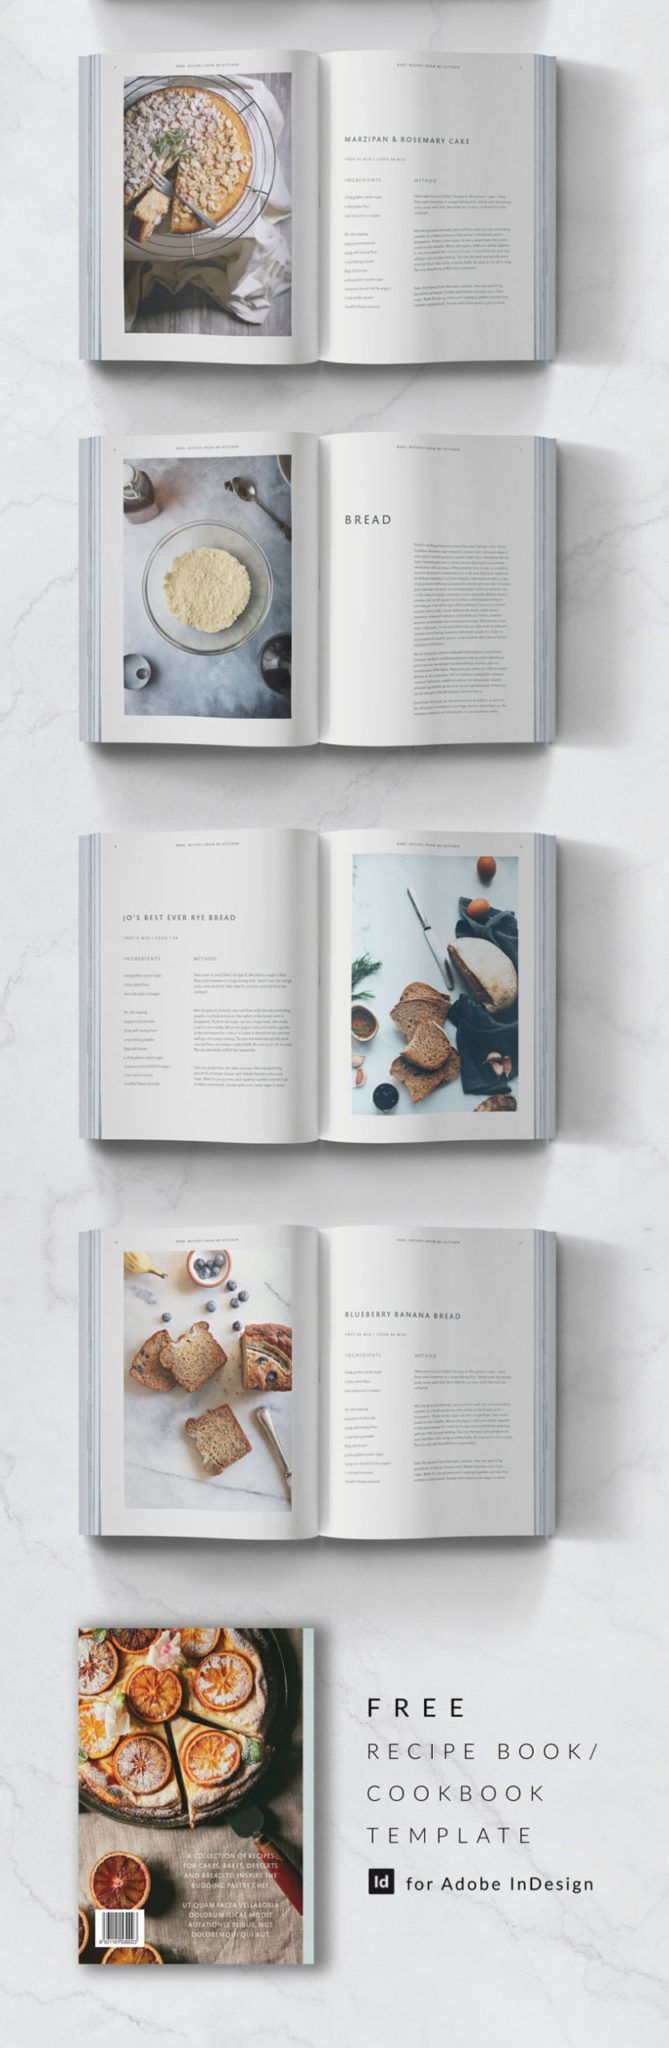 010 Awesome Free Recipe Book Template Example  Editable Cookbook For Microsoft Word IndesignFull